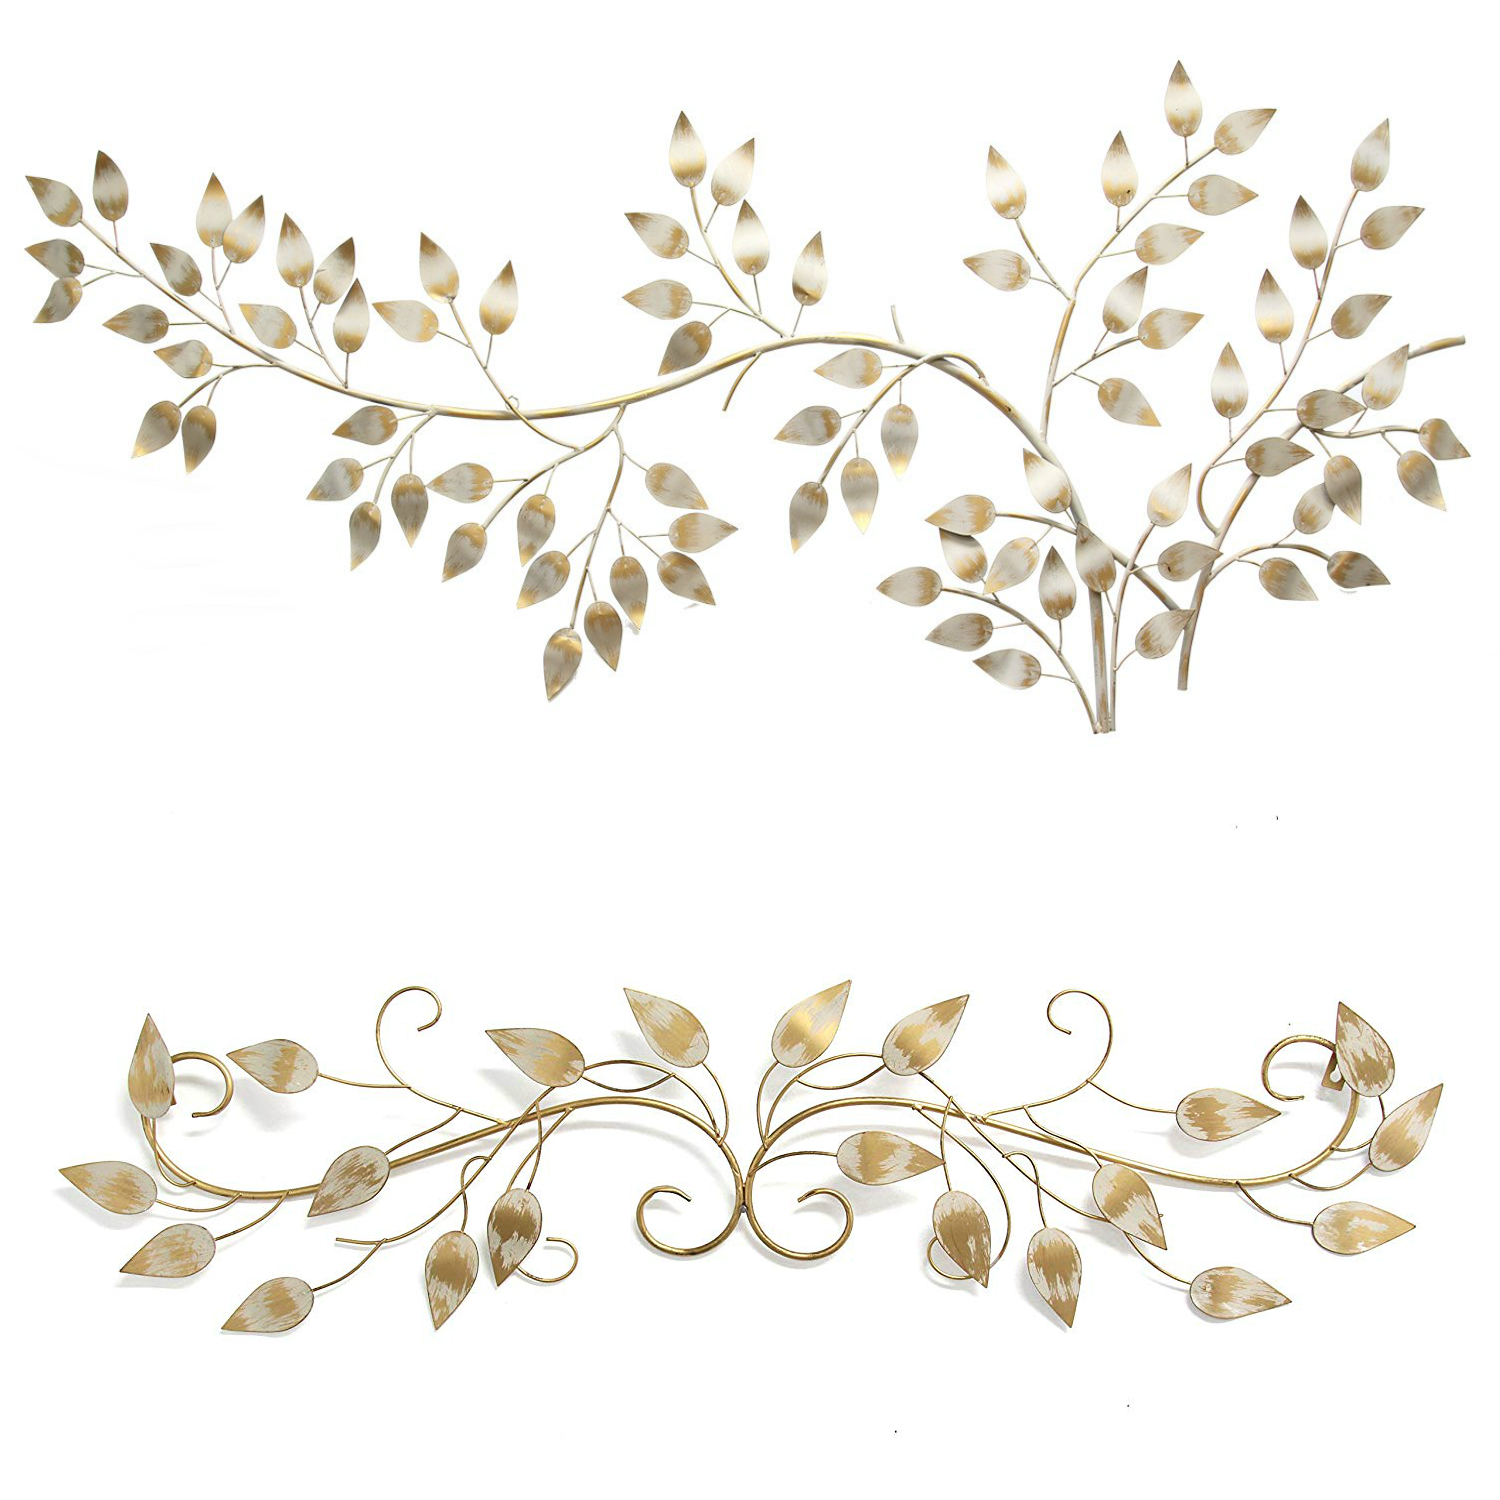 Stratton Home Decor Brushed Gold Over The Door Scroll Wall Decor Multicolor With Brushed Flowing Leaves Wall Decor Gold And Metallic White Walmart Com Walmart Com